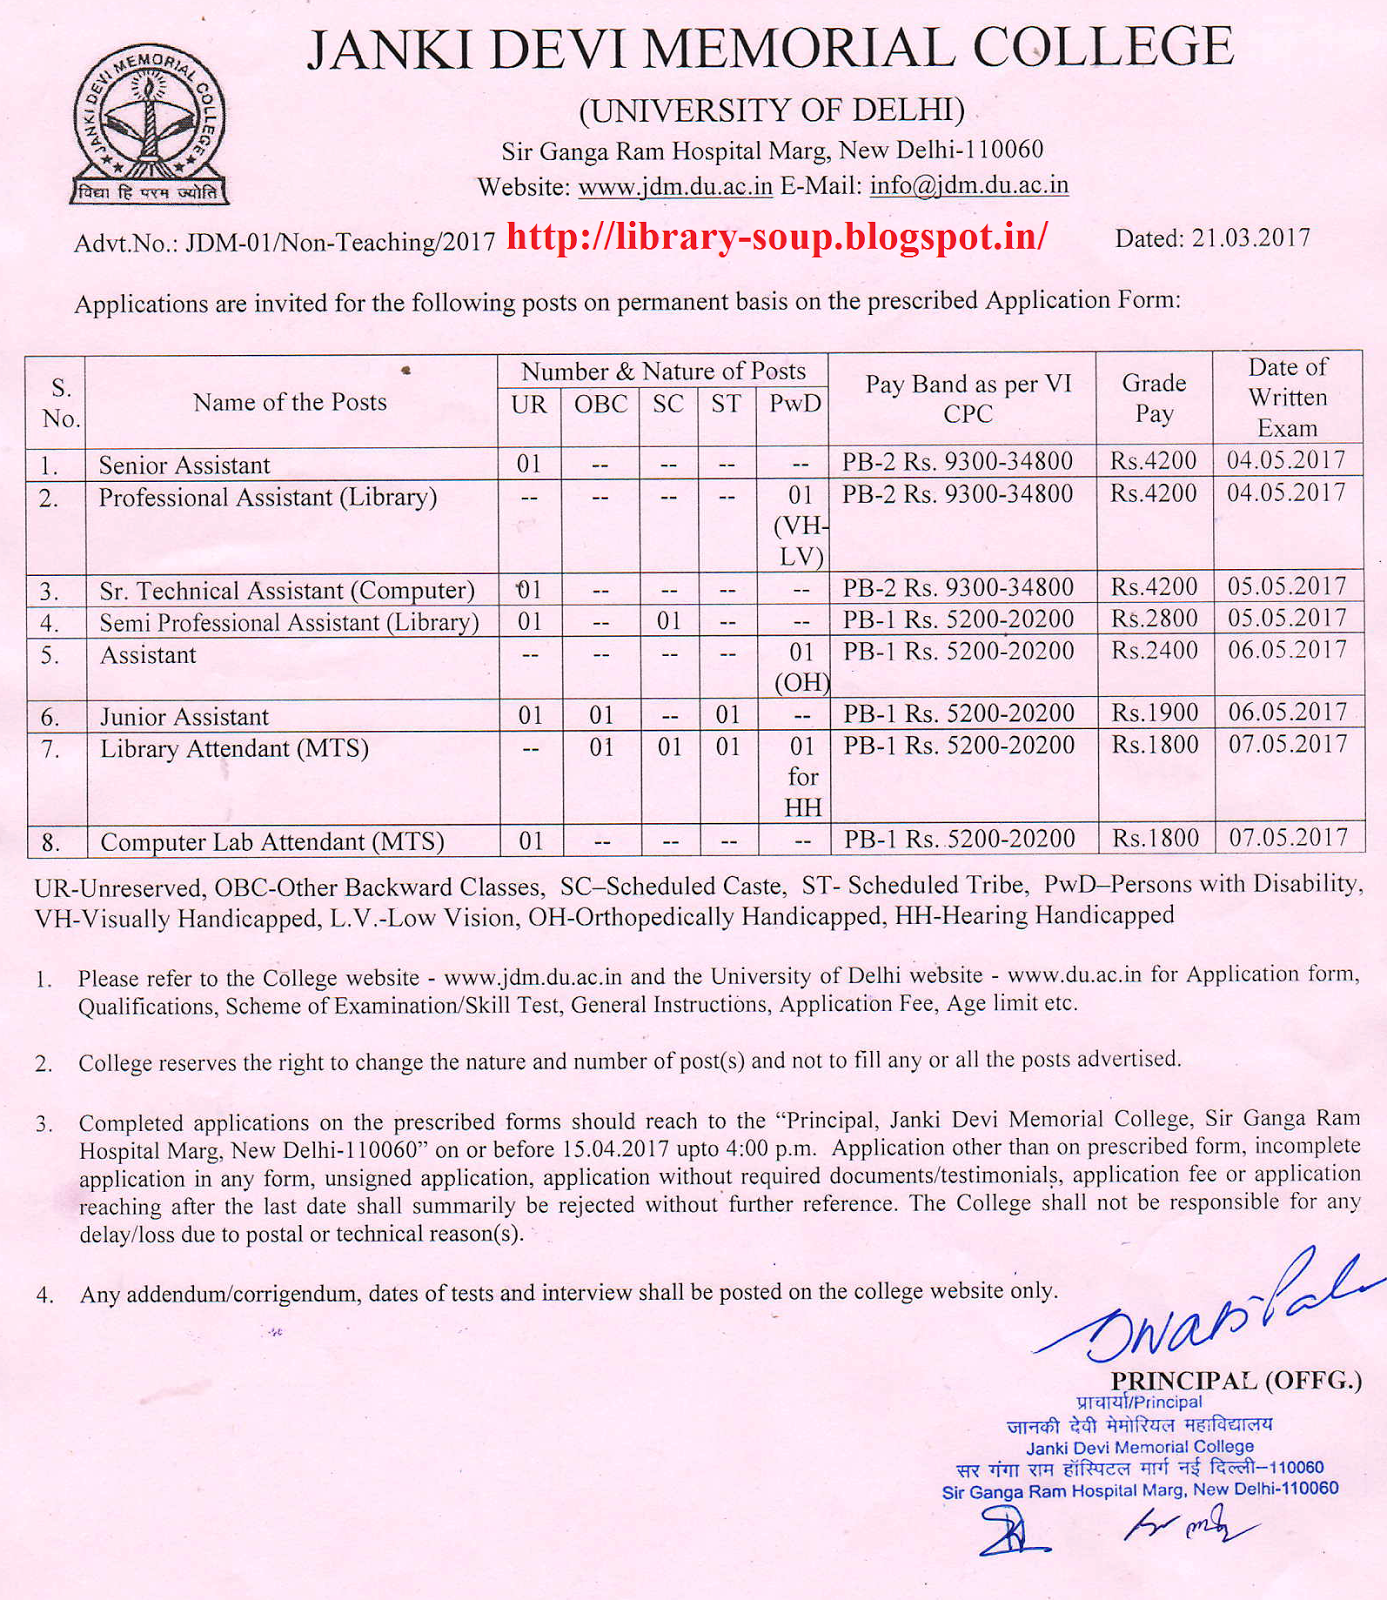 library soup professional assistant semi professional assistant professional assistant semi professional assistant and mts library vacancy at janki devi memorial college university of delhi new delhi 60